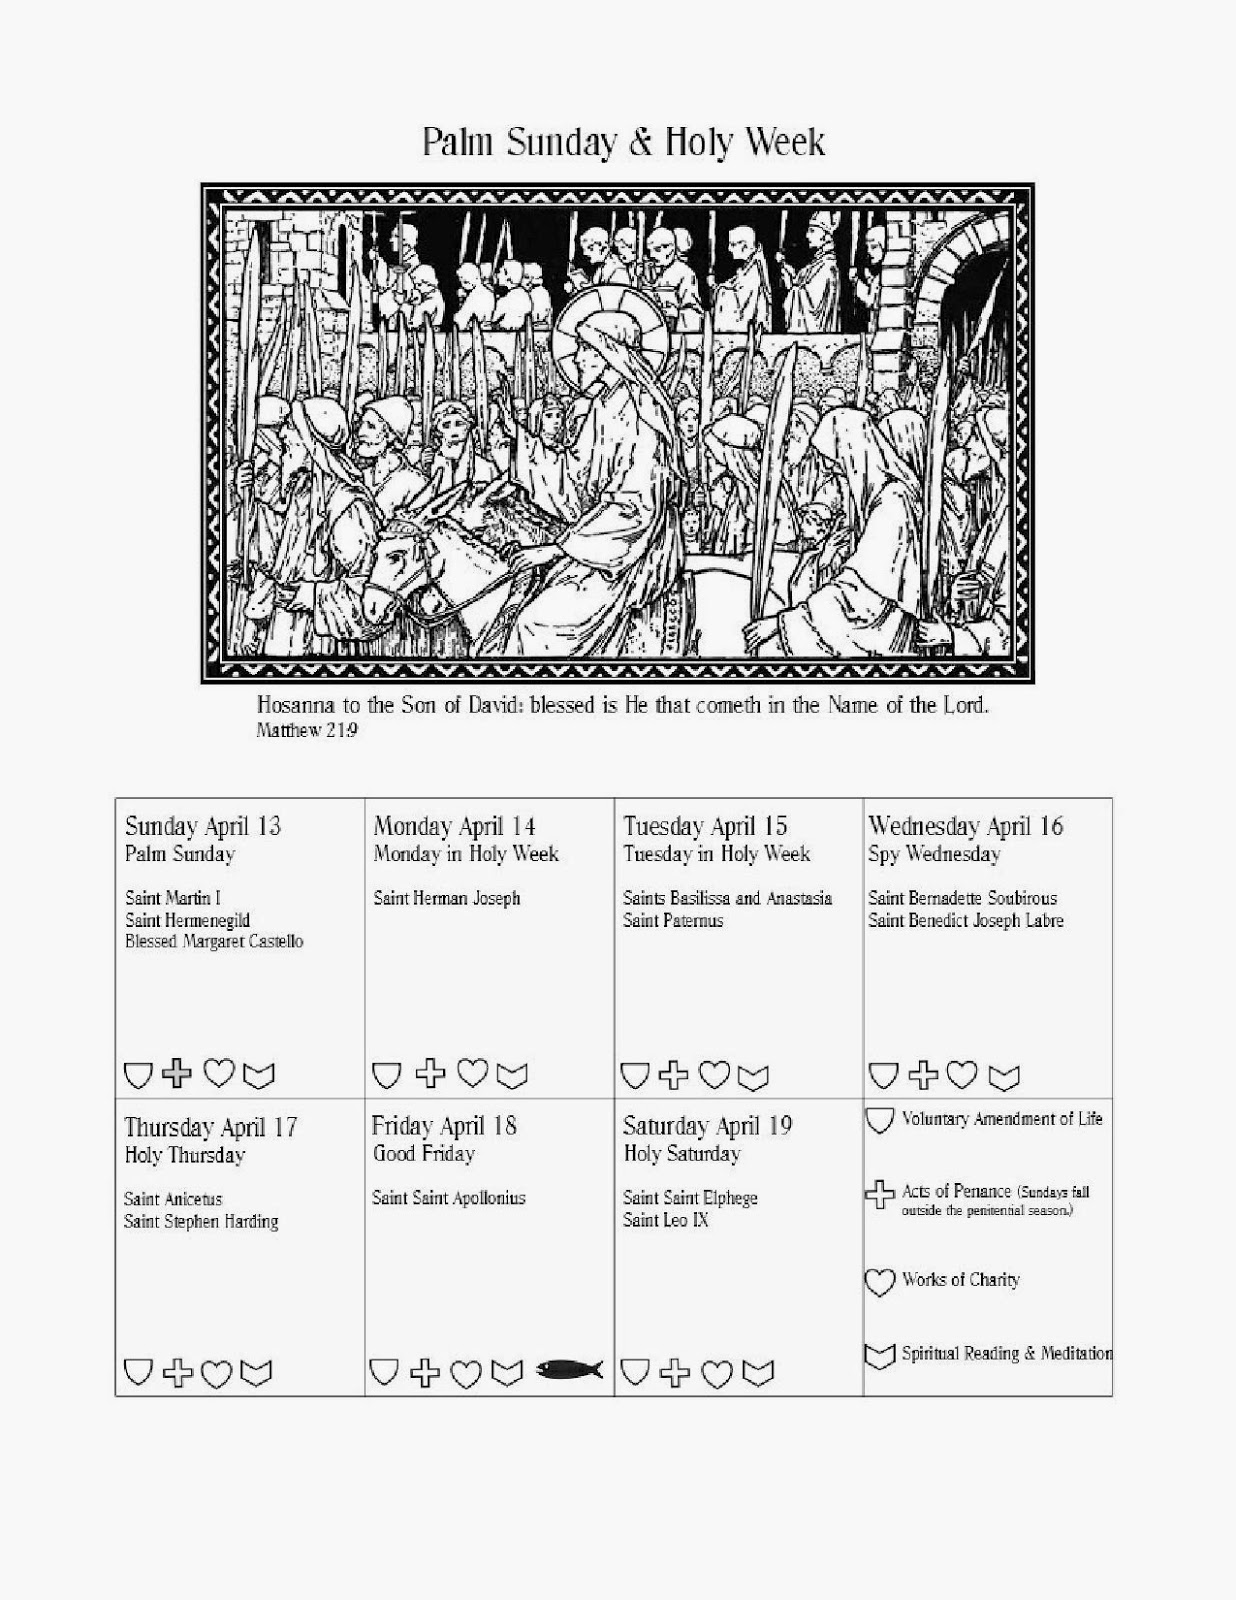 Trinity acres lenten calendar next year i plan to start at septuagesima sunday to include the pre lenten season and perhaps add some other things but for a last minute project i biocorpaavc